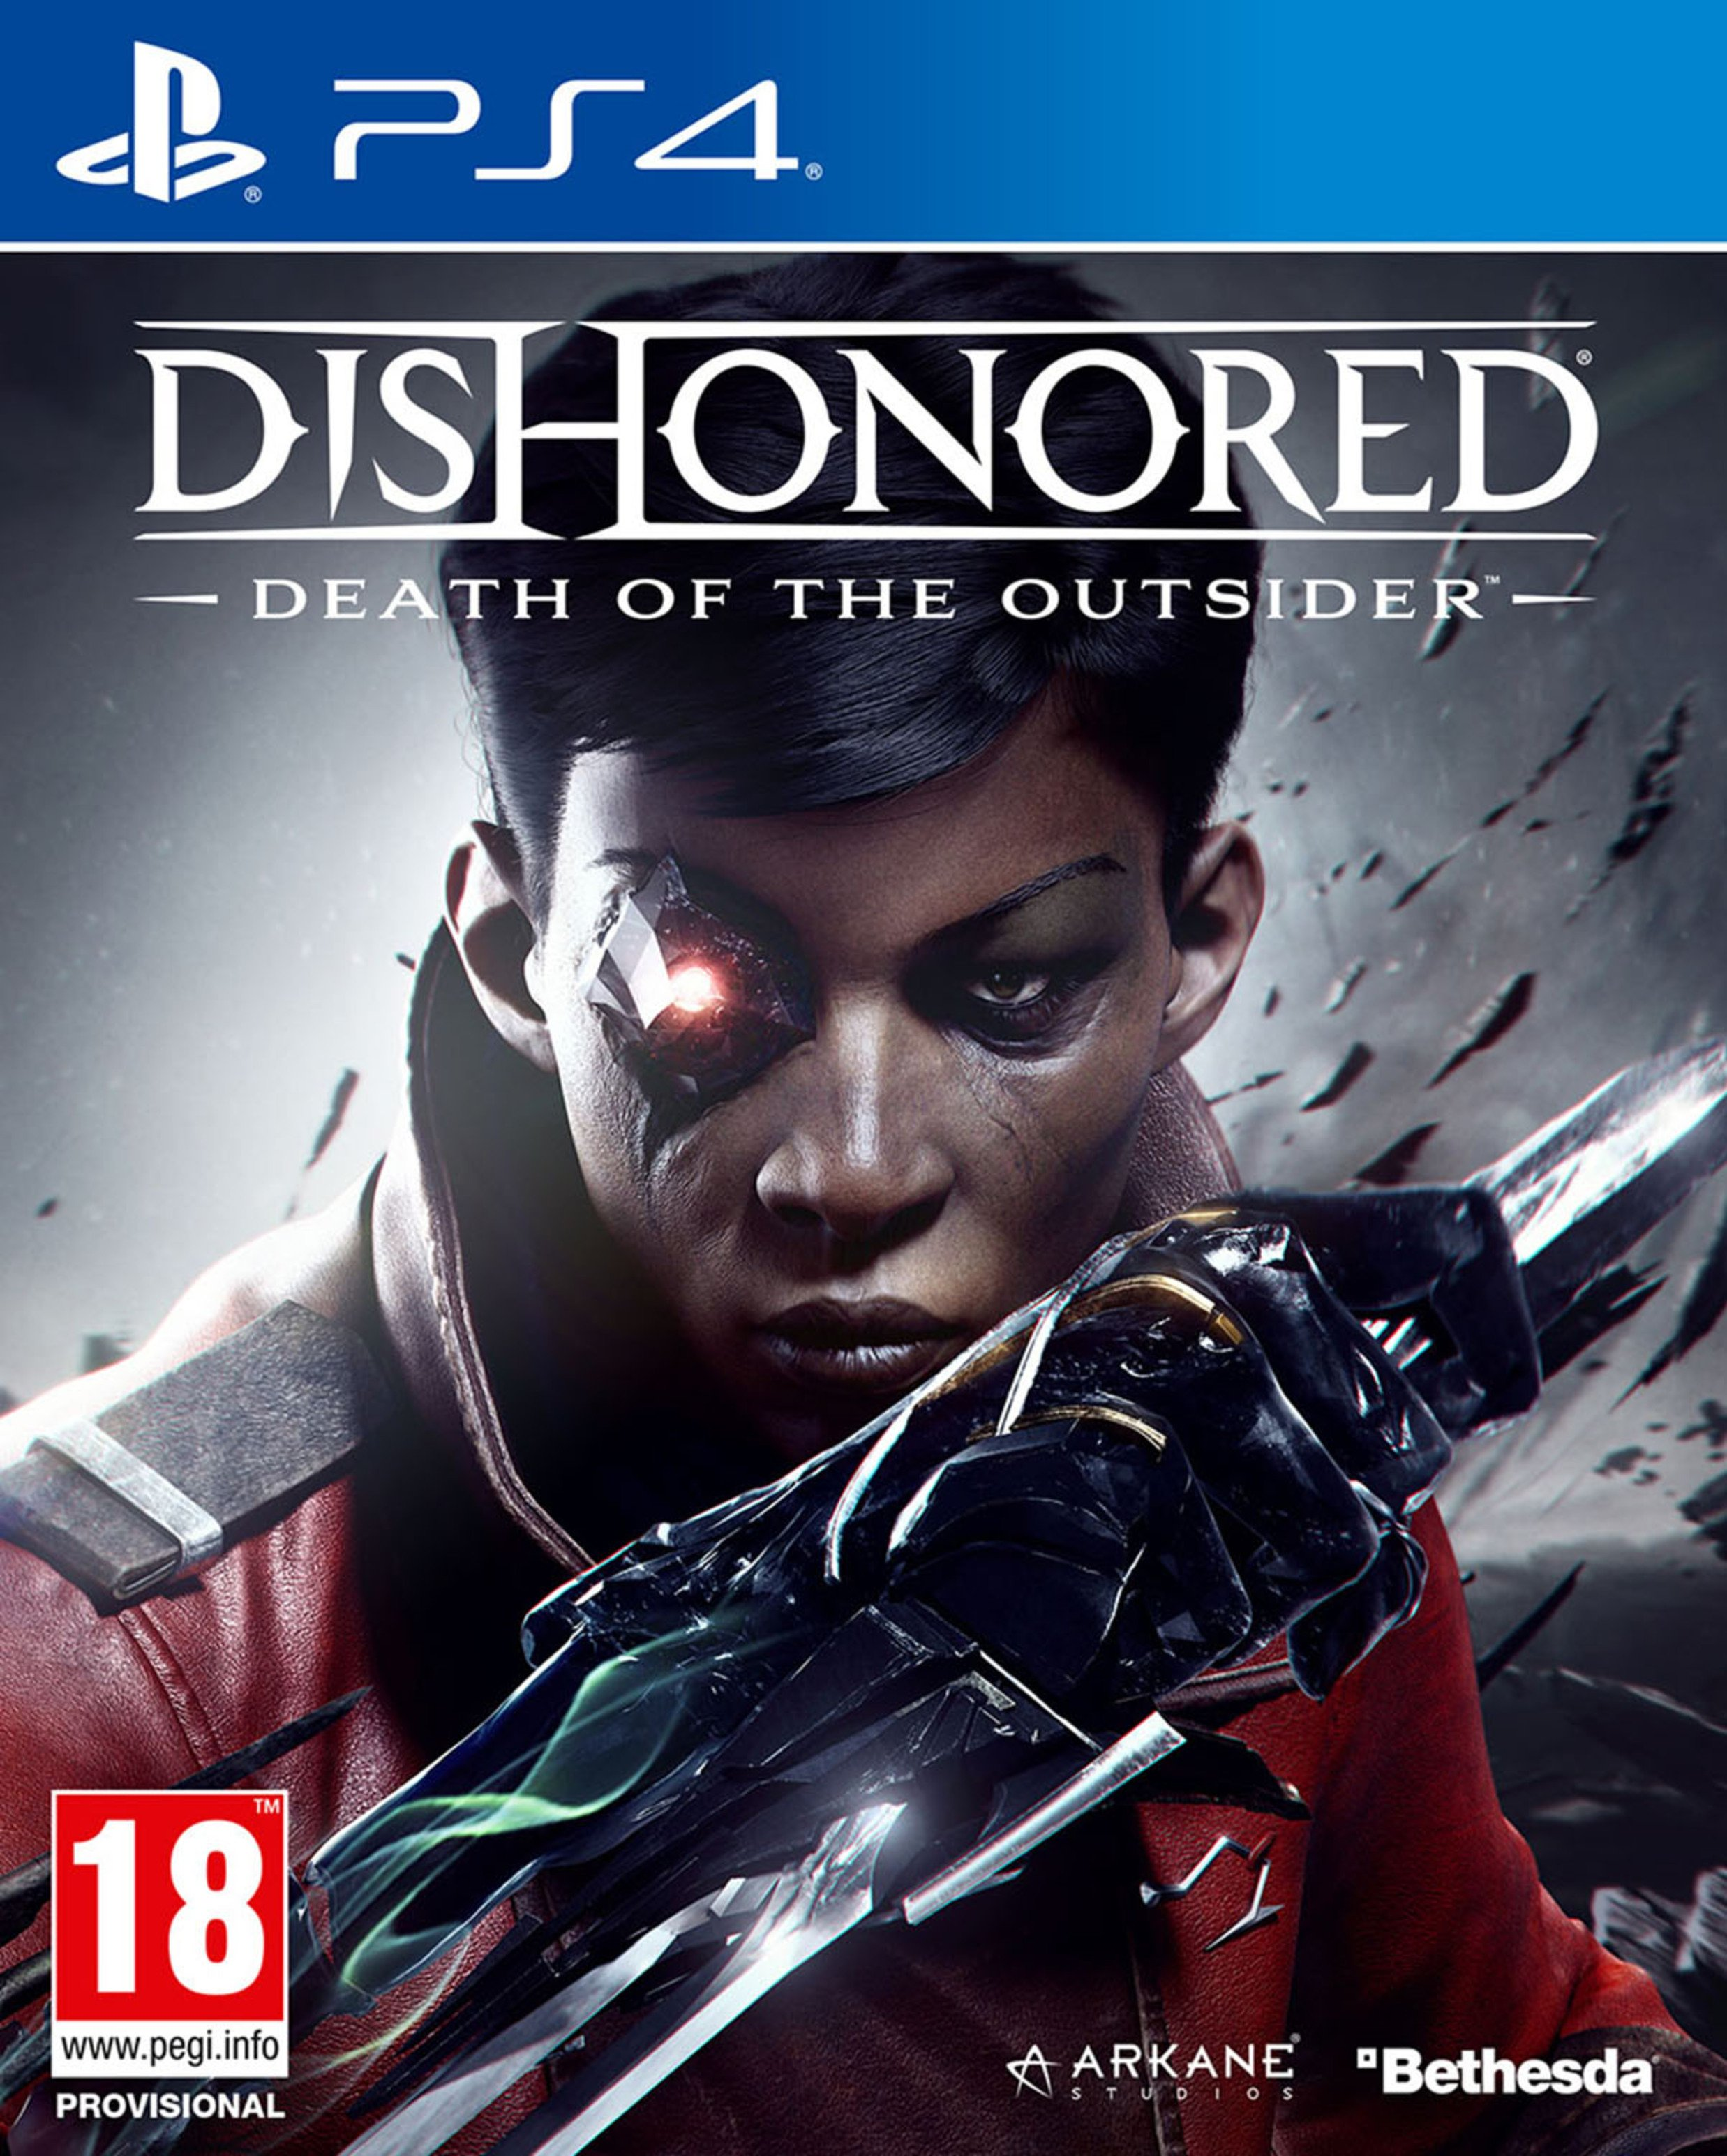 Image of Dishonored: Death of the Outsider PS4 Game.